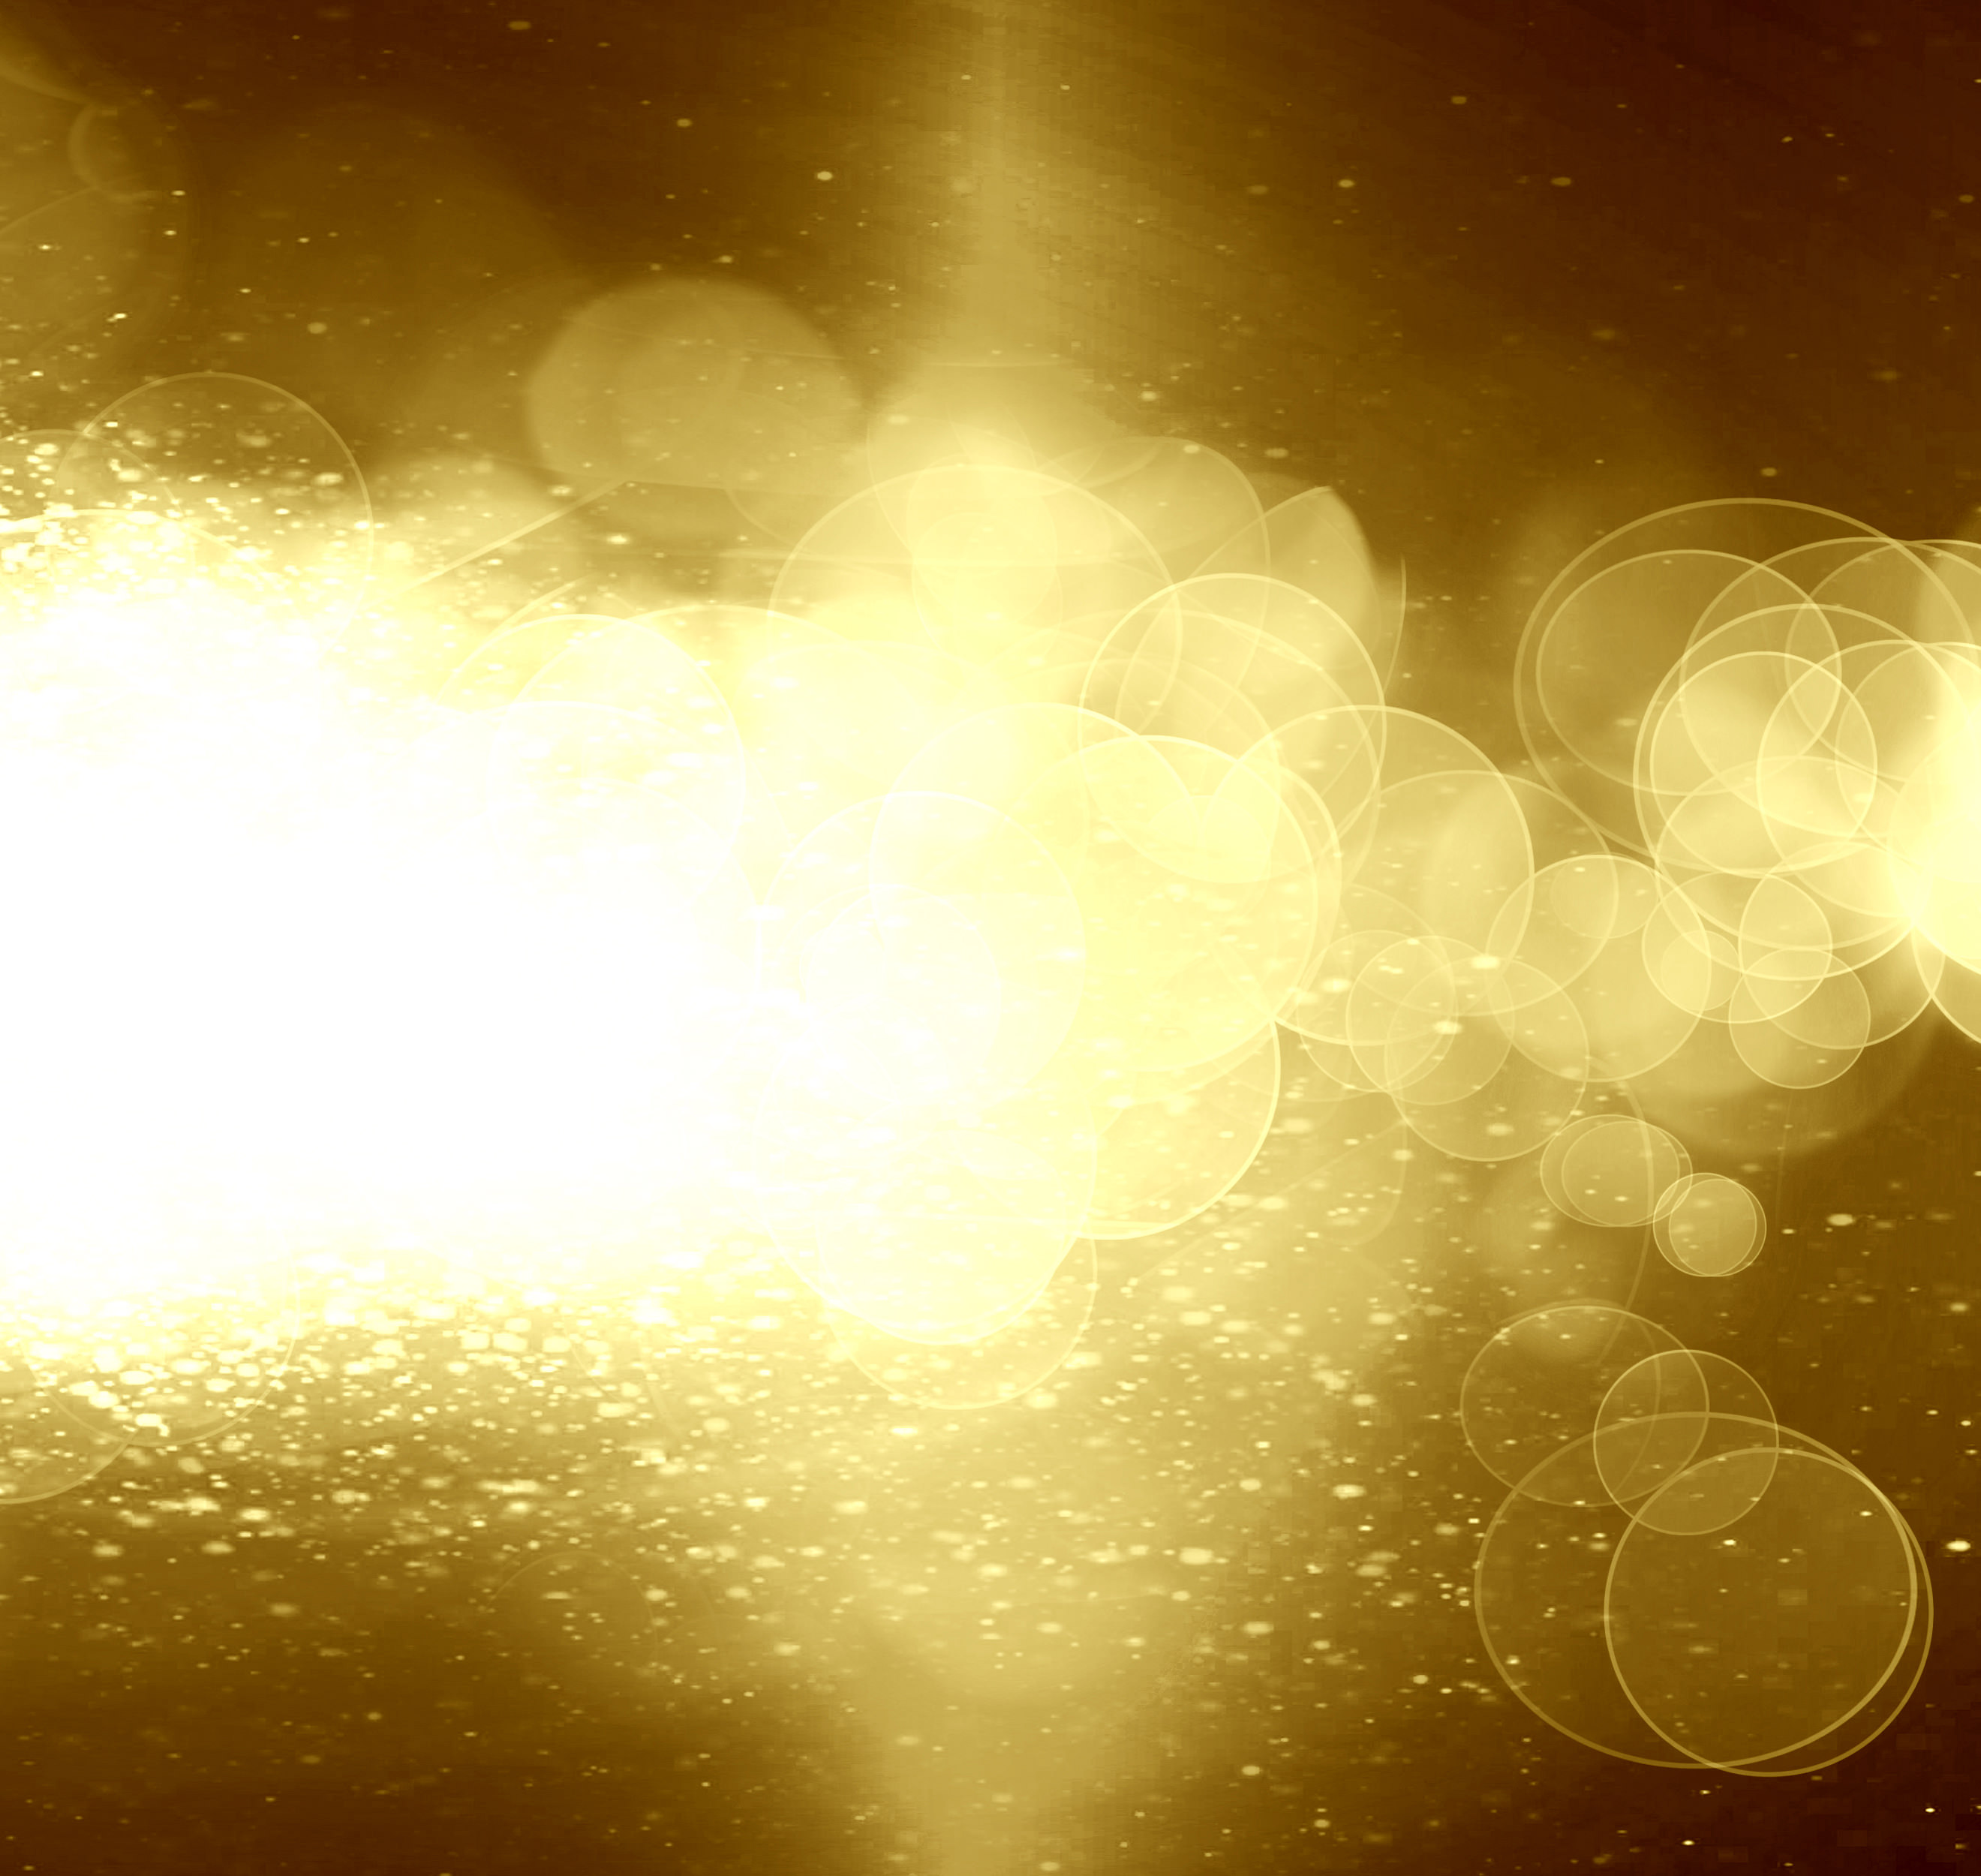 Amazing Gold Glitter Background